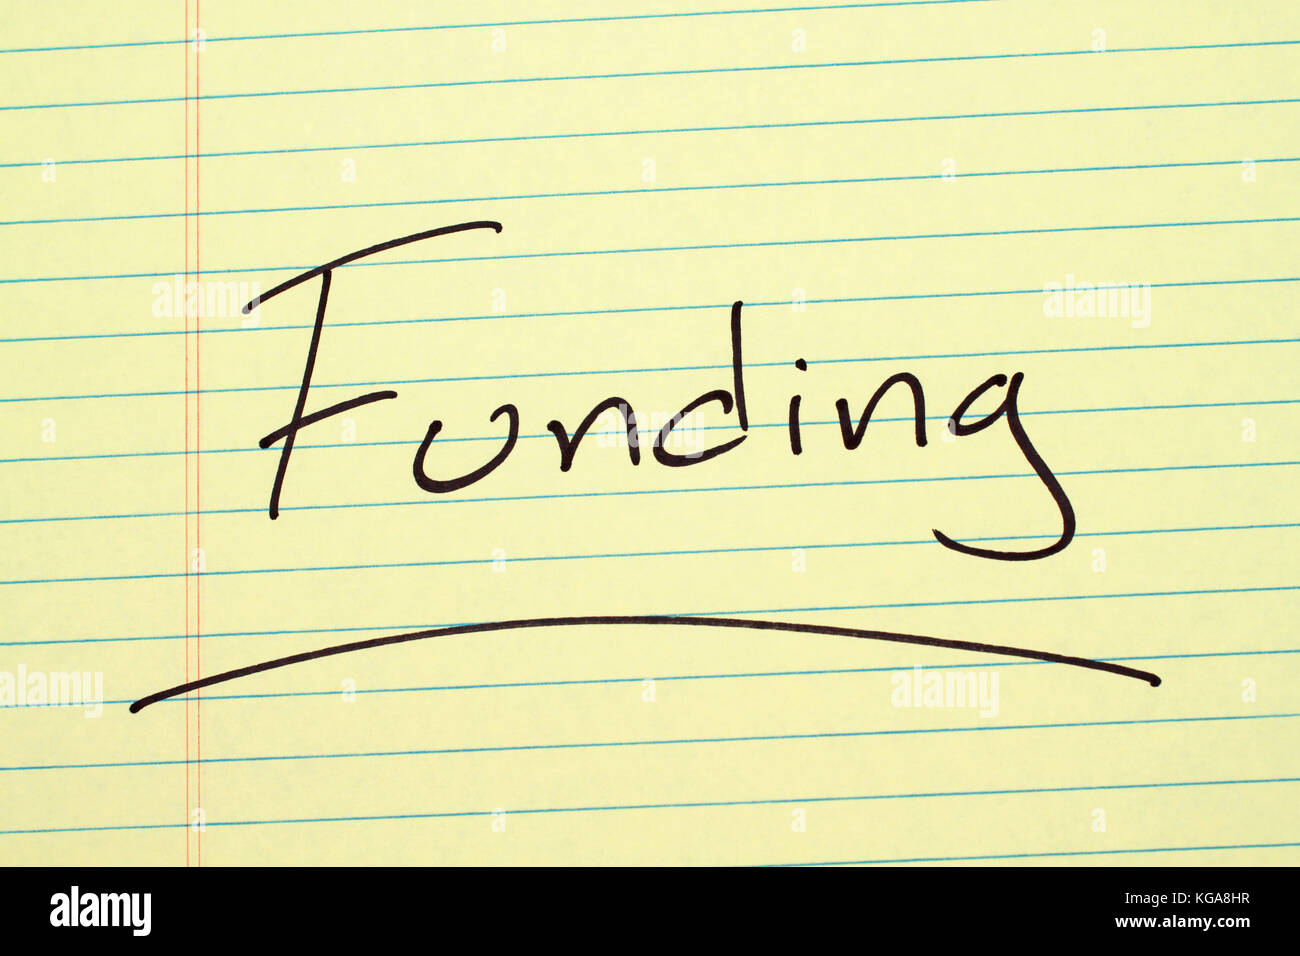 The word 'Funding' underlined on a yellow legal pad - Stock Image